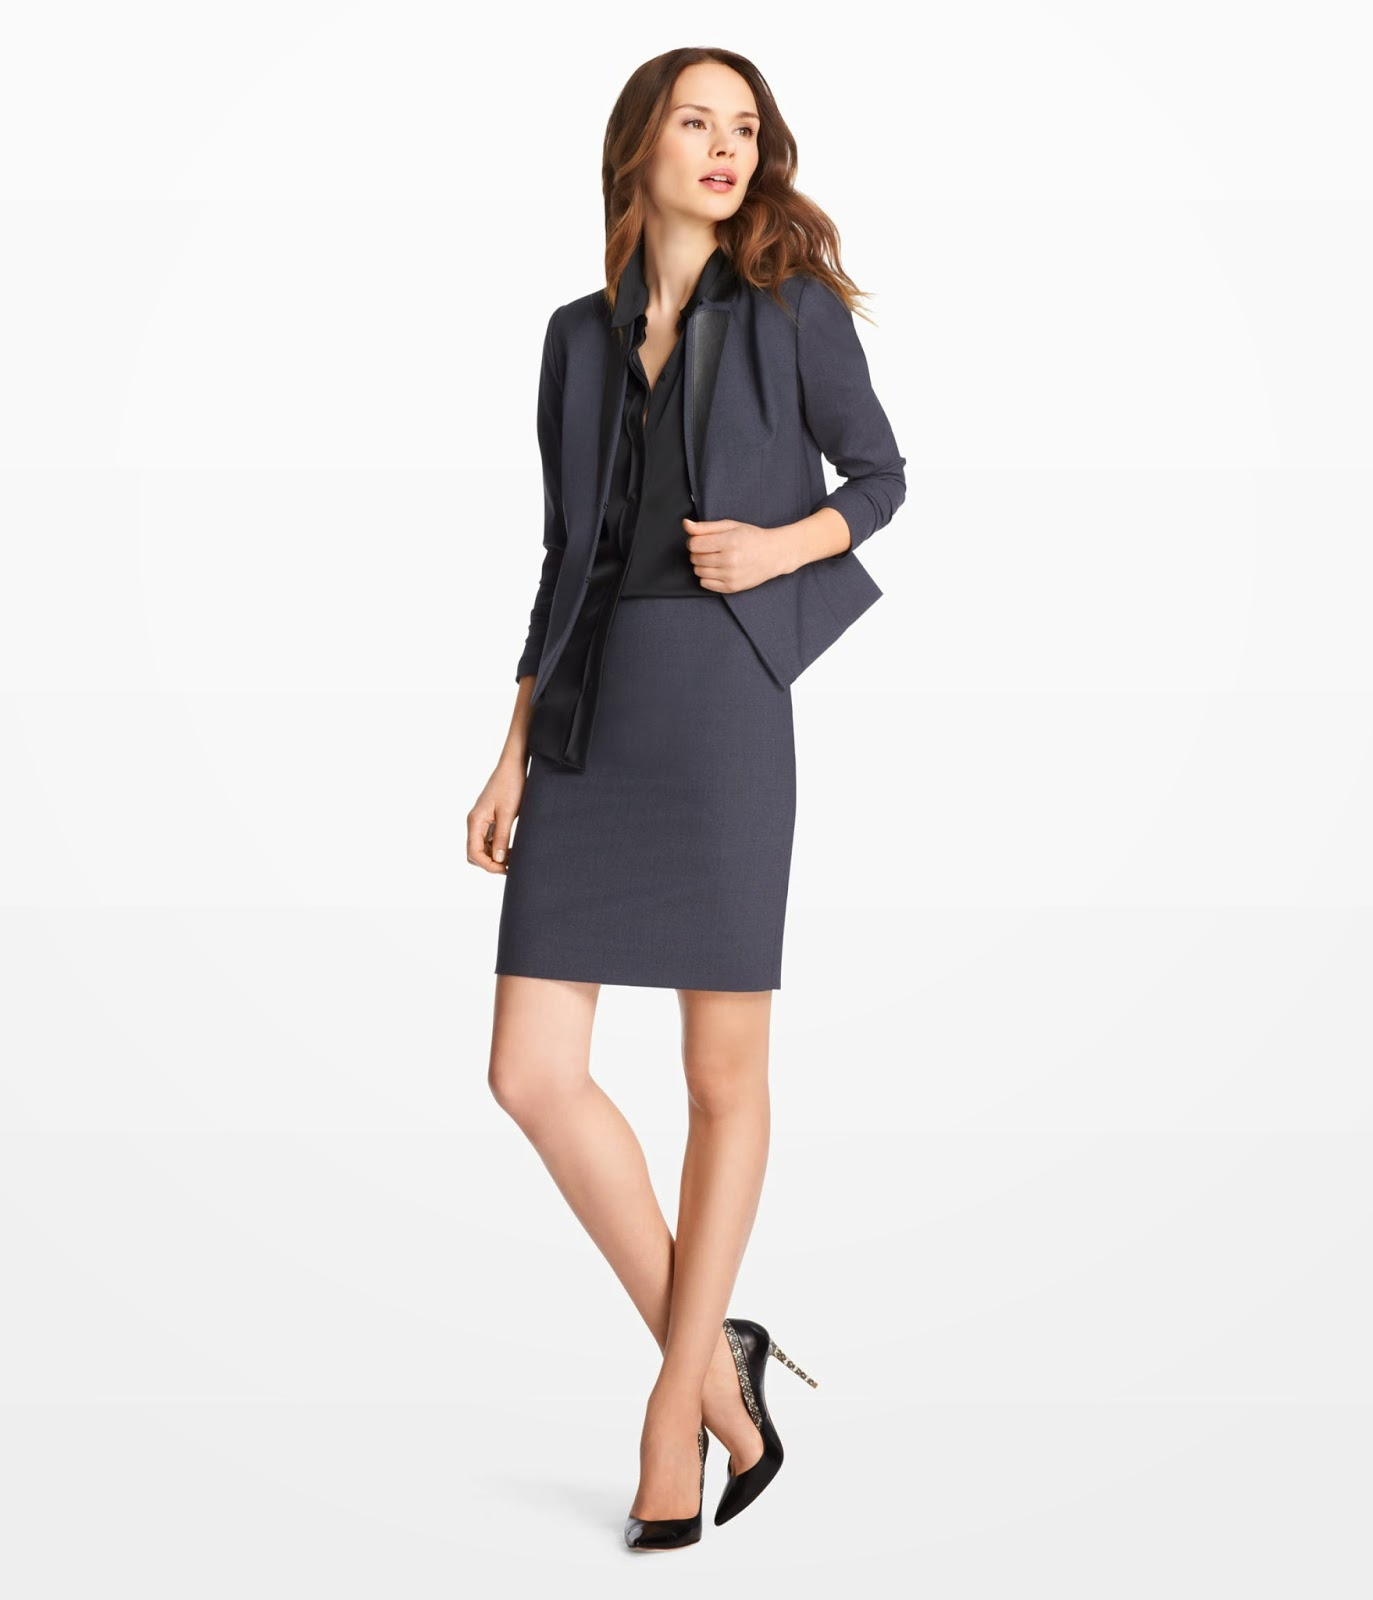 link camp classic suit and skirt for women gallery 2014